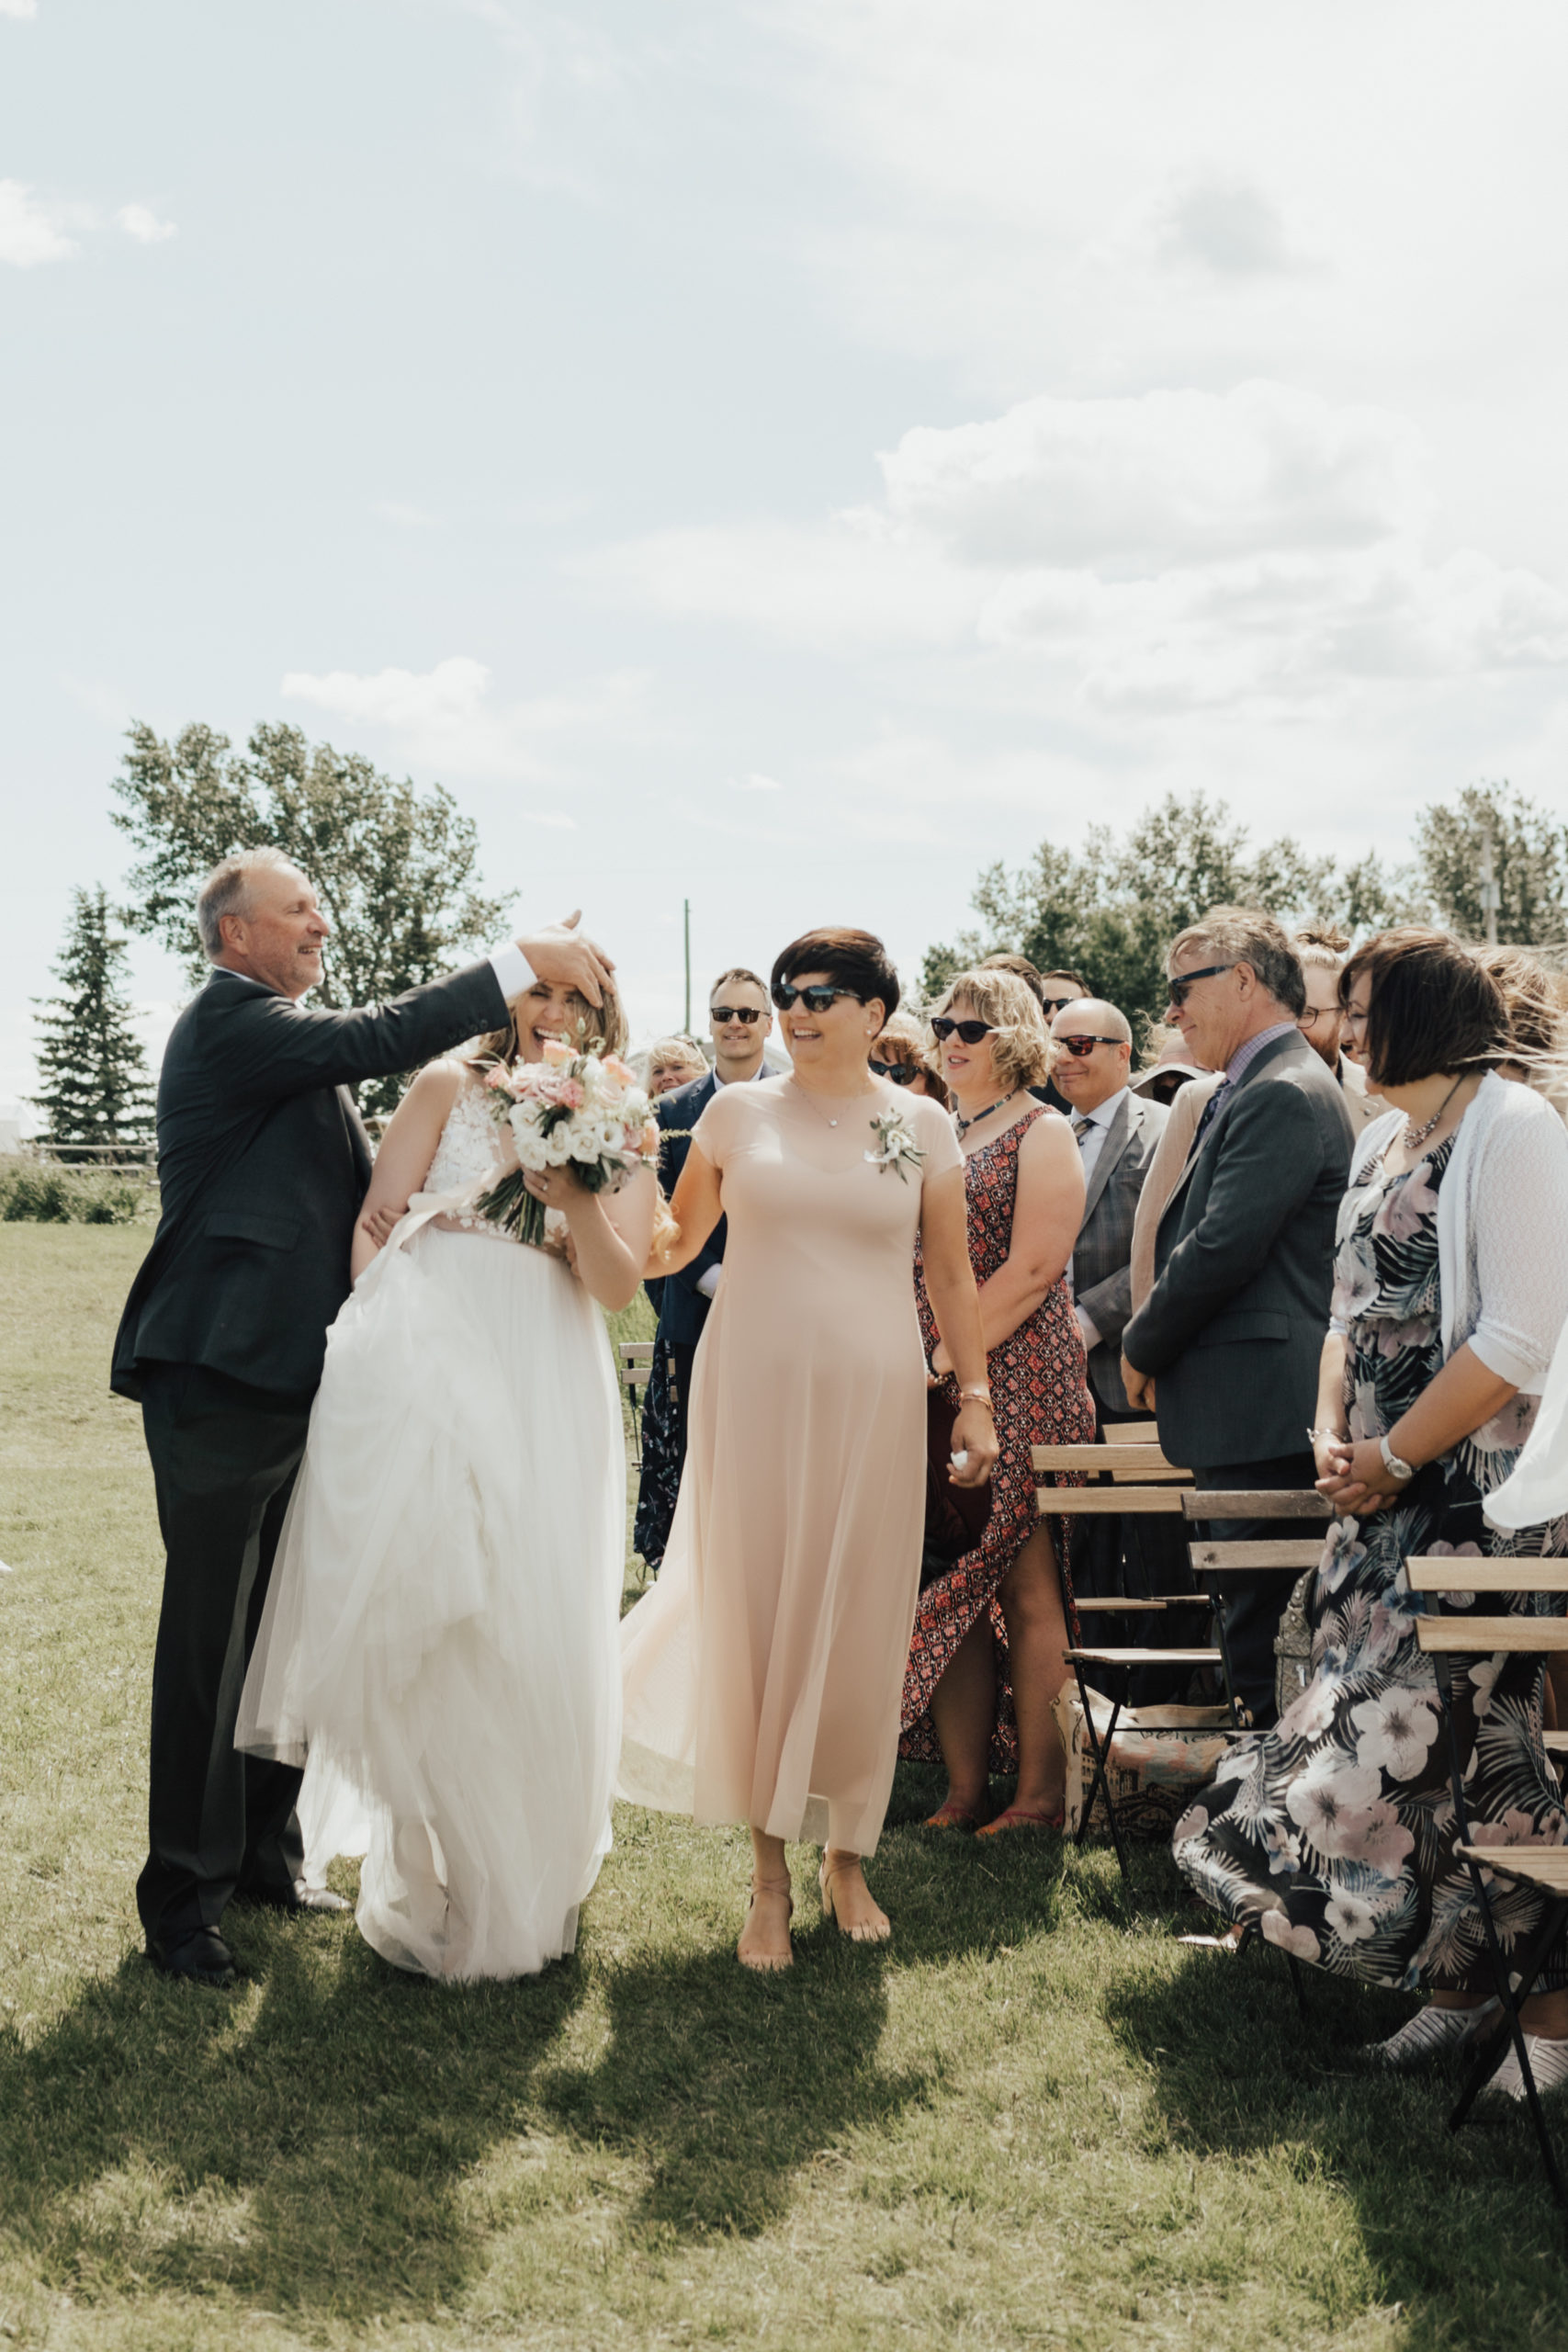 father of the bride fixes brides hair that is in her face as she is walking down the aisle of her modern outdoor wedding venue.